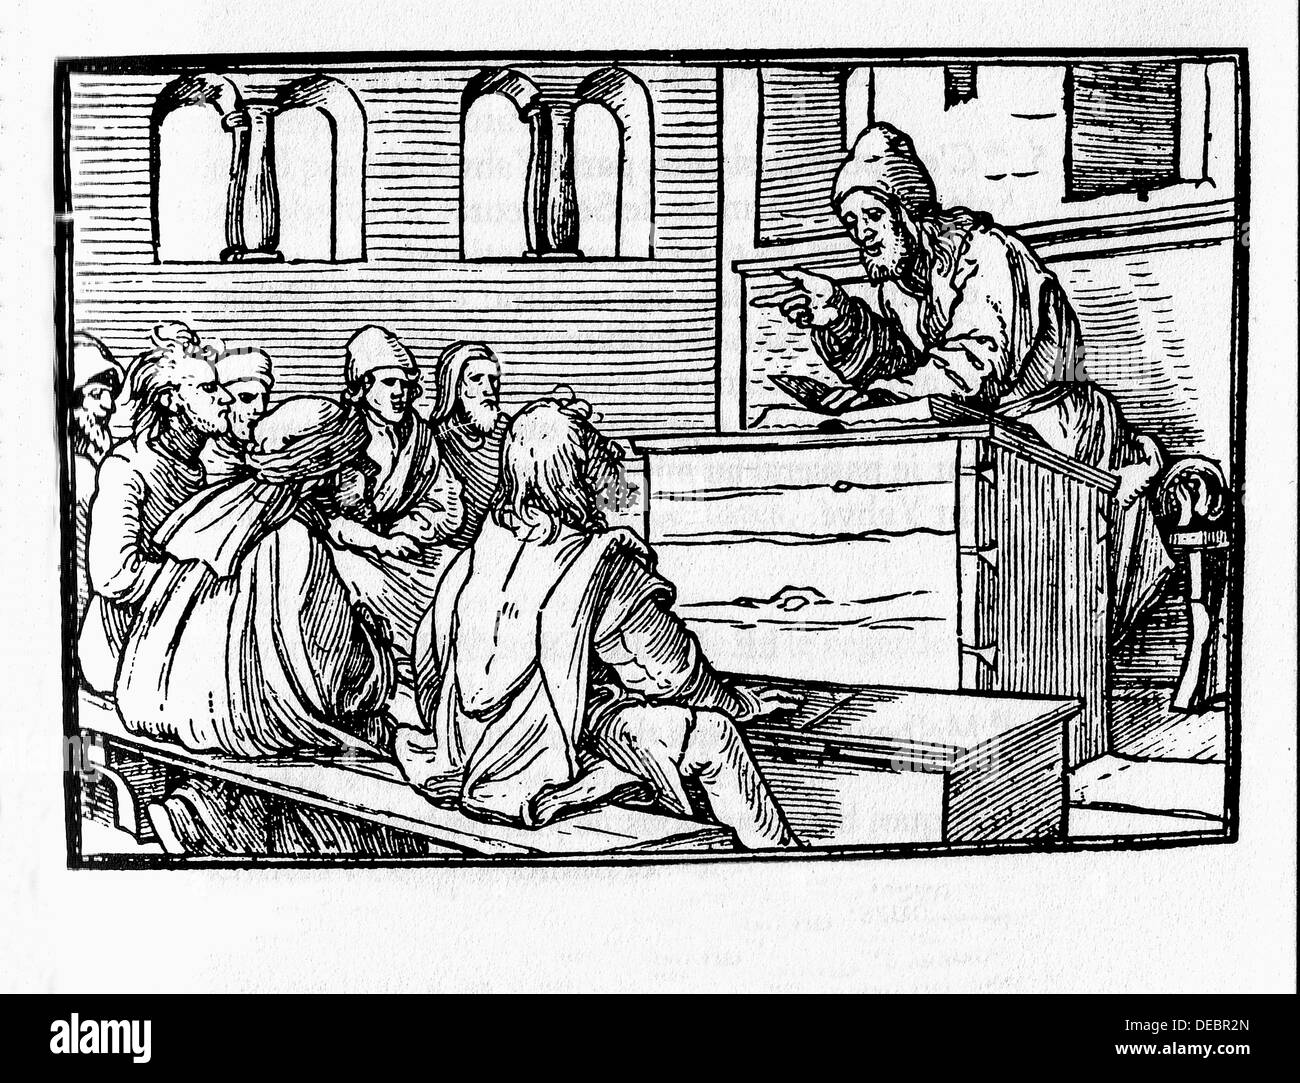 Minor prophets of the Bible: Amos. Engraving by Holbein. Lyon, 1547 - Stock Image